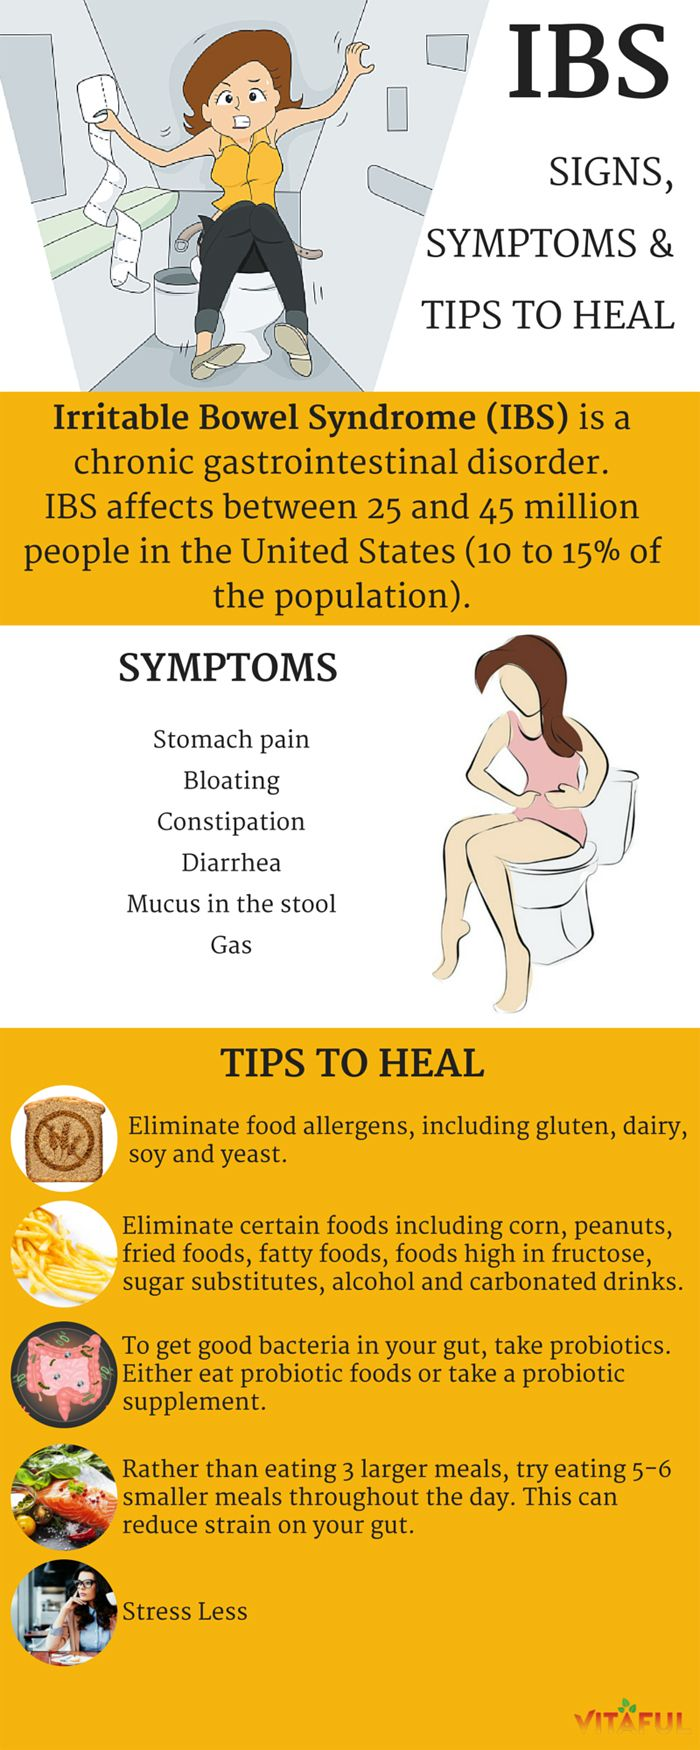 If you experience unpleasant bowels regularly, you may have irritable bowel syndrome (IBS).